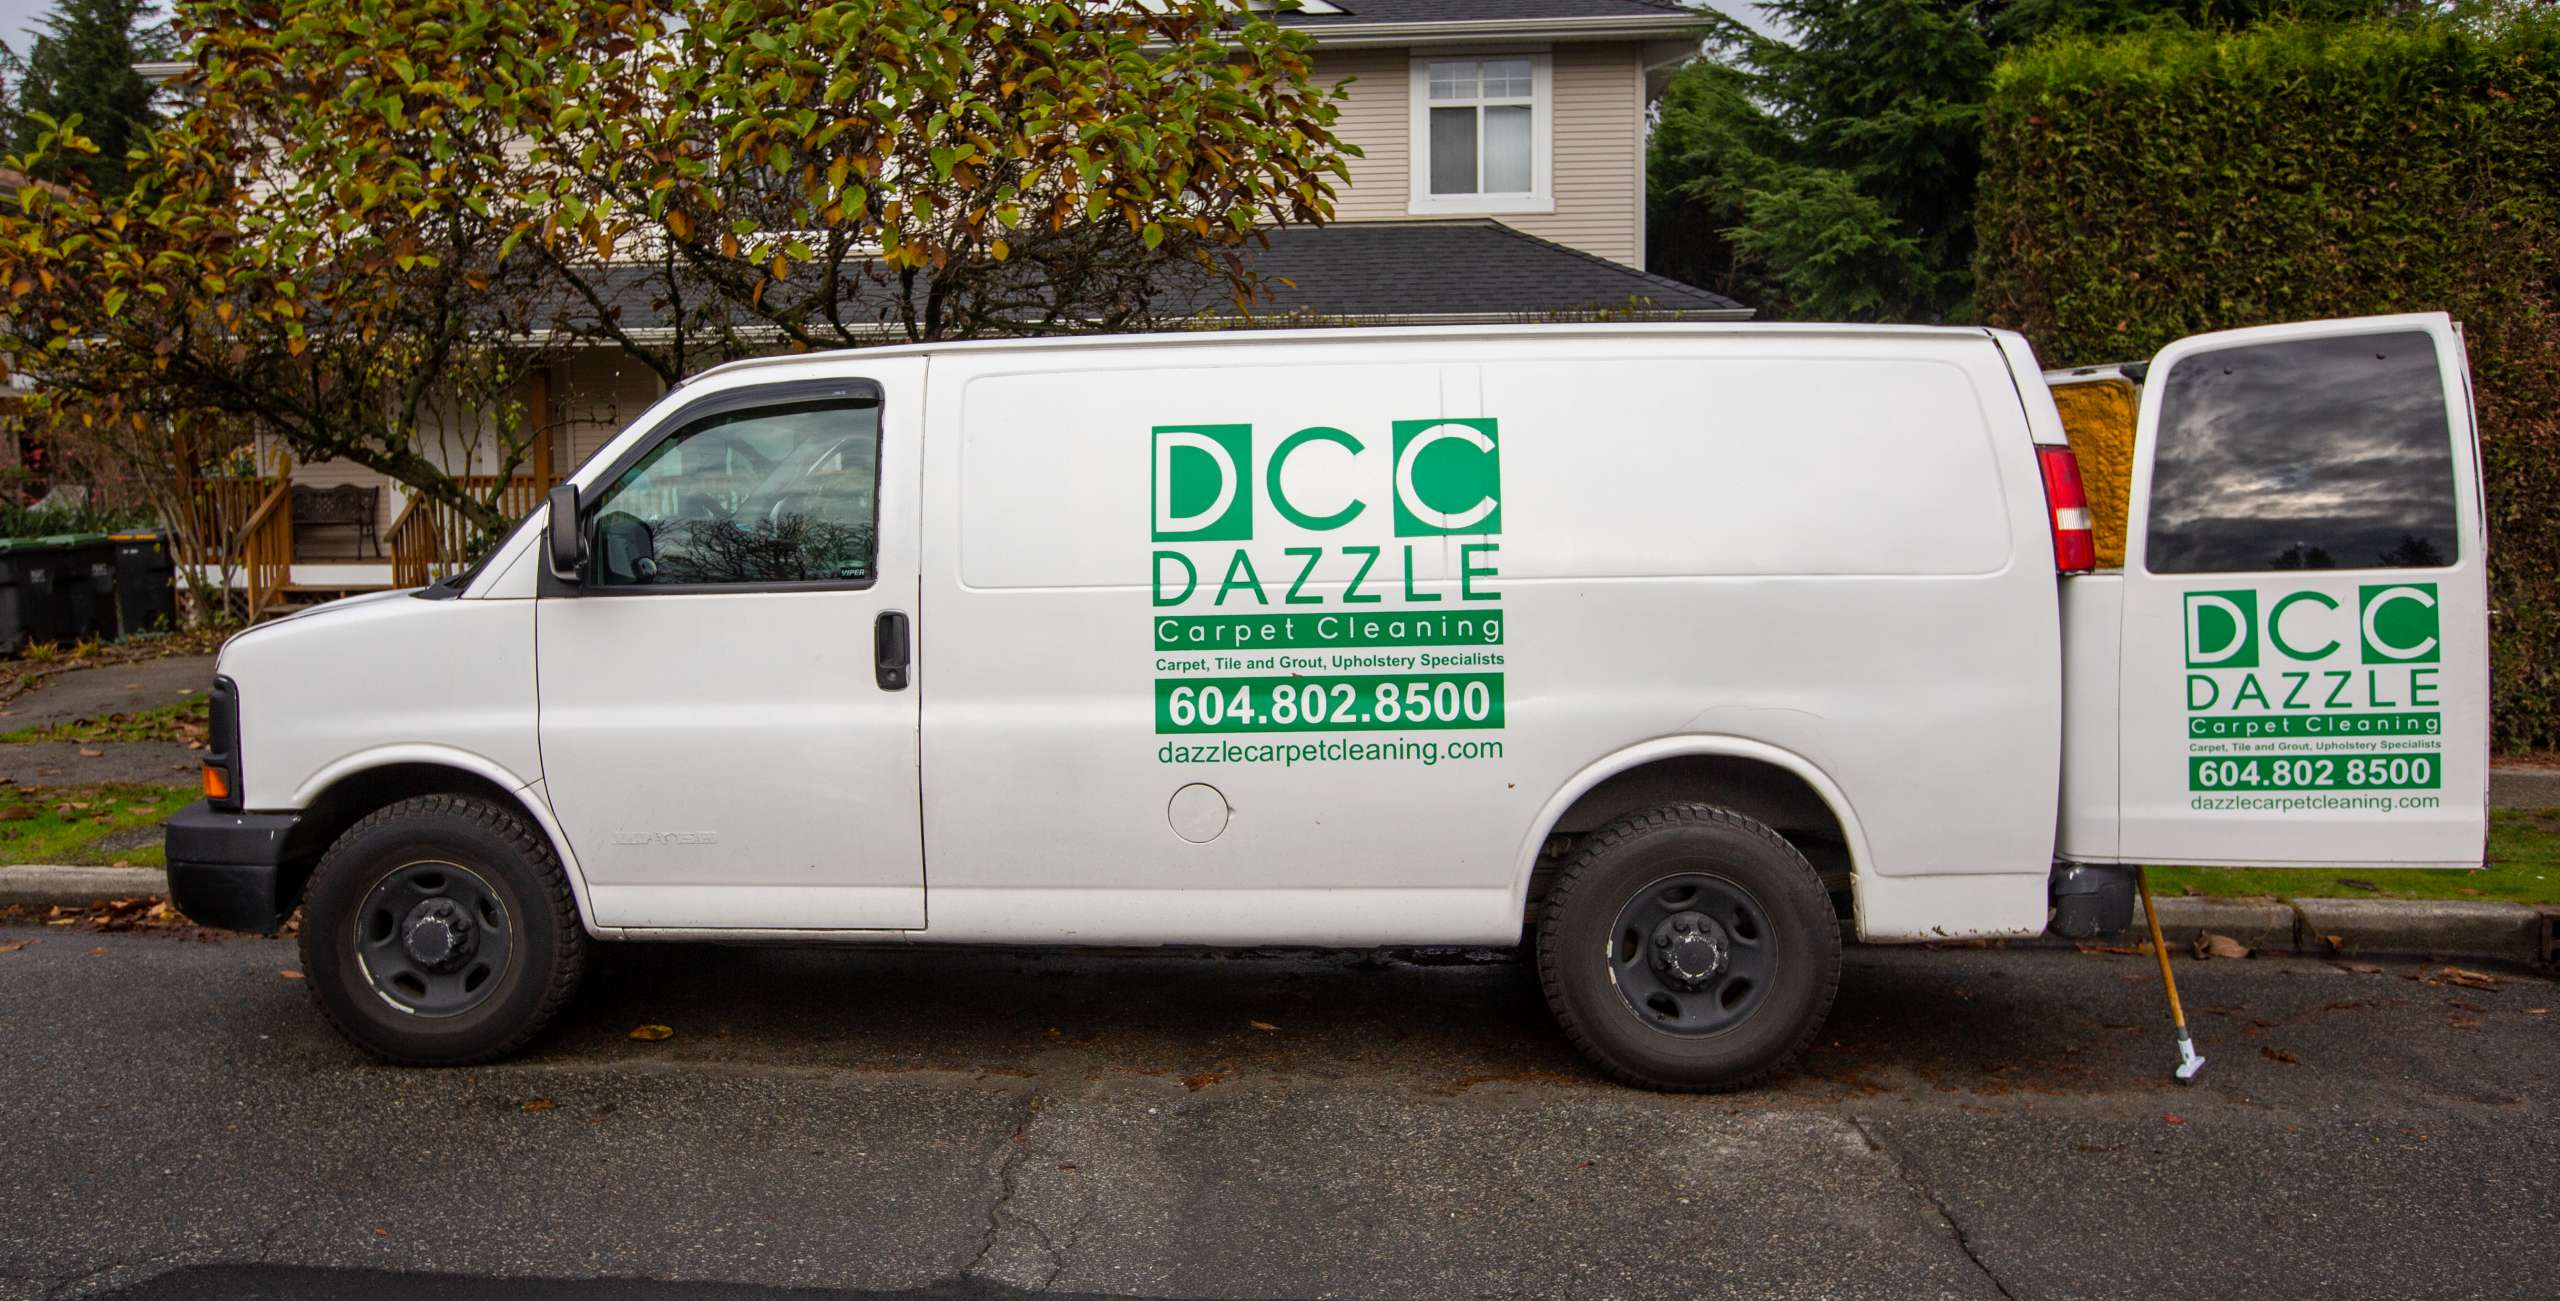 Commercial Carpet Cleaning West Van: Dazzle CC